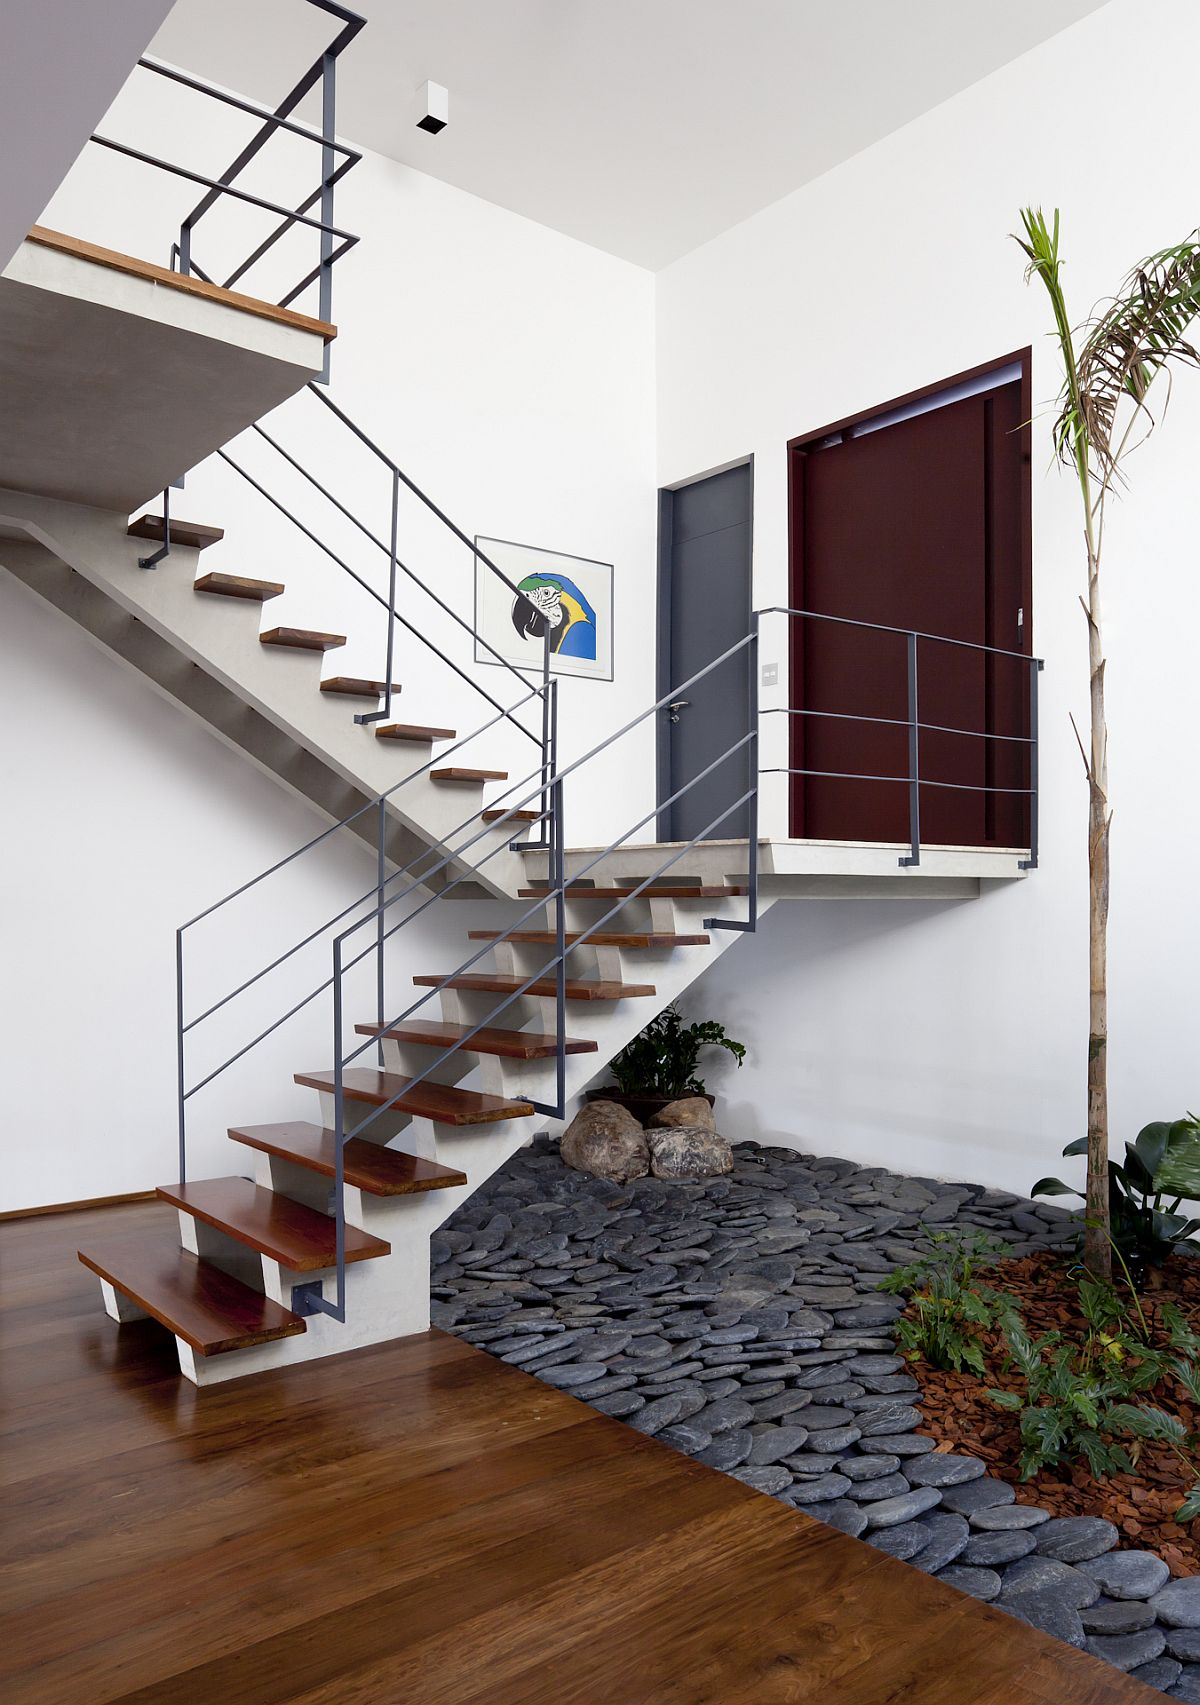 Indoor garden under the stairs with stones all around